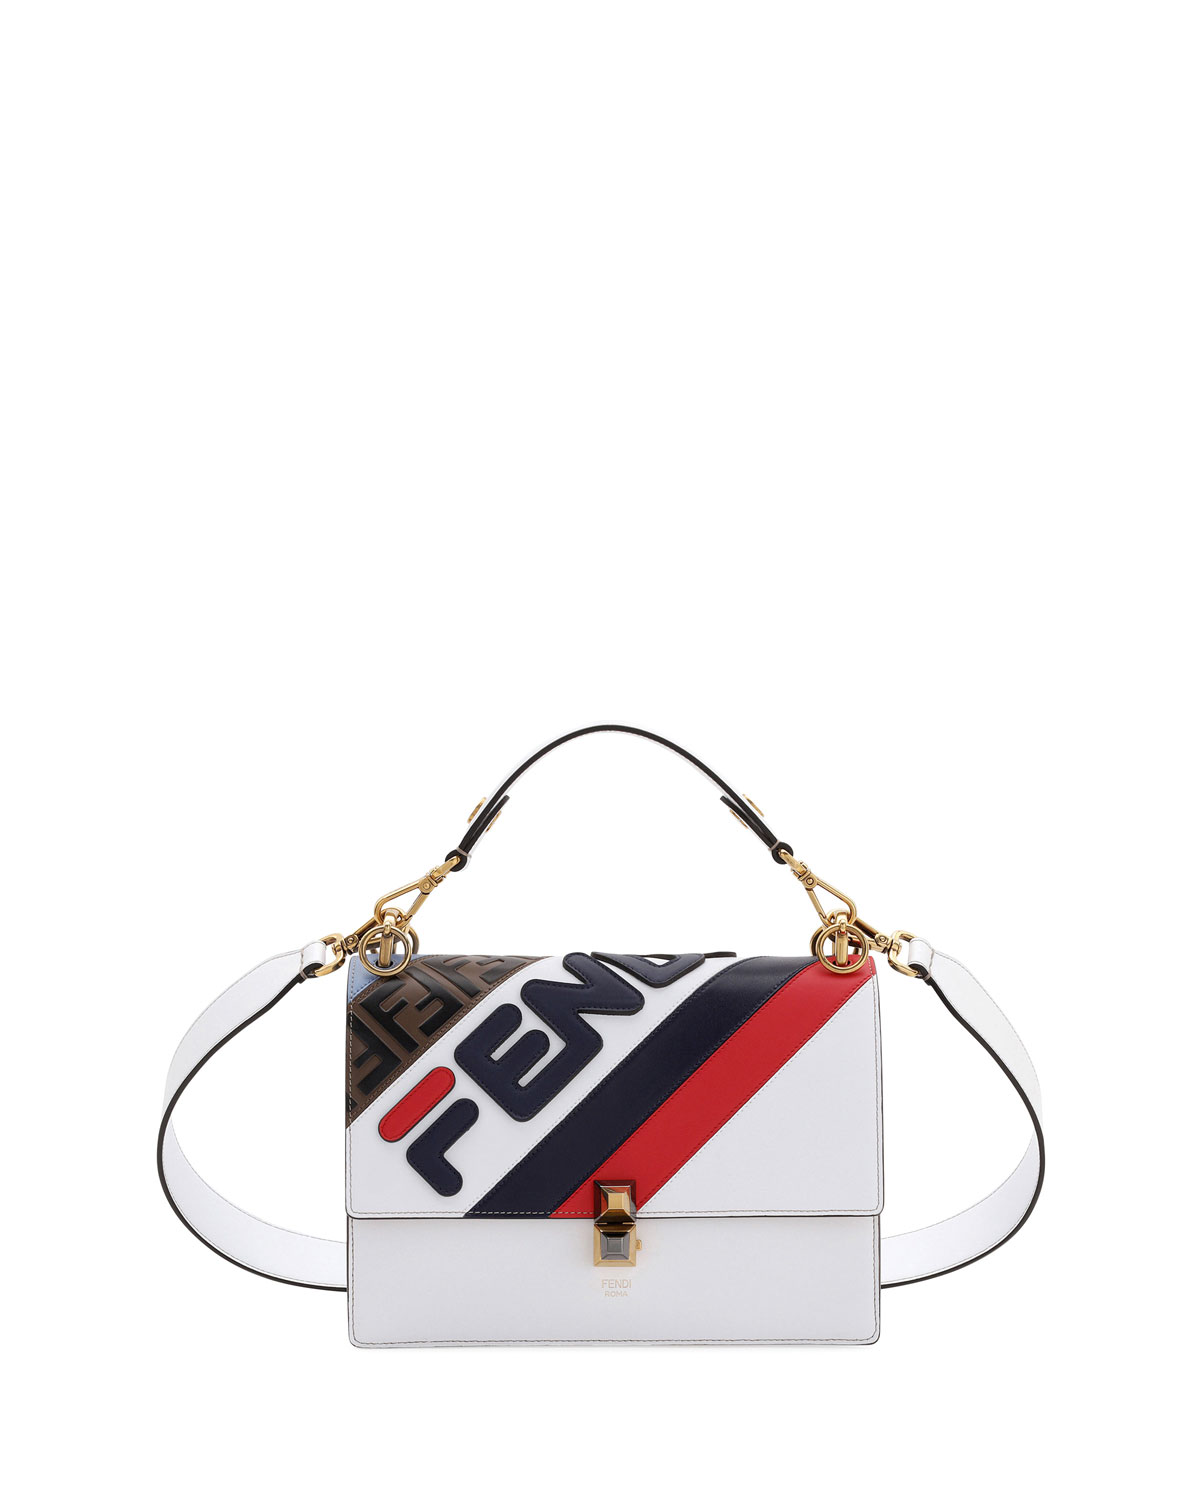 a9b8022470a0 Fendi Kan I Fendi Mania Striped Shoulder Bag